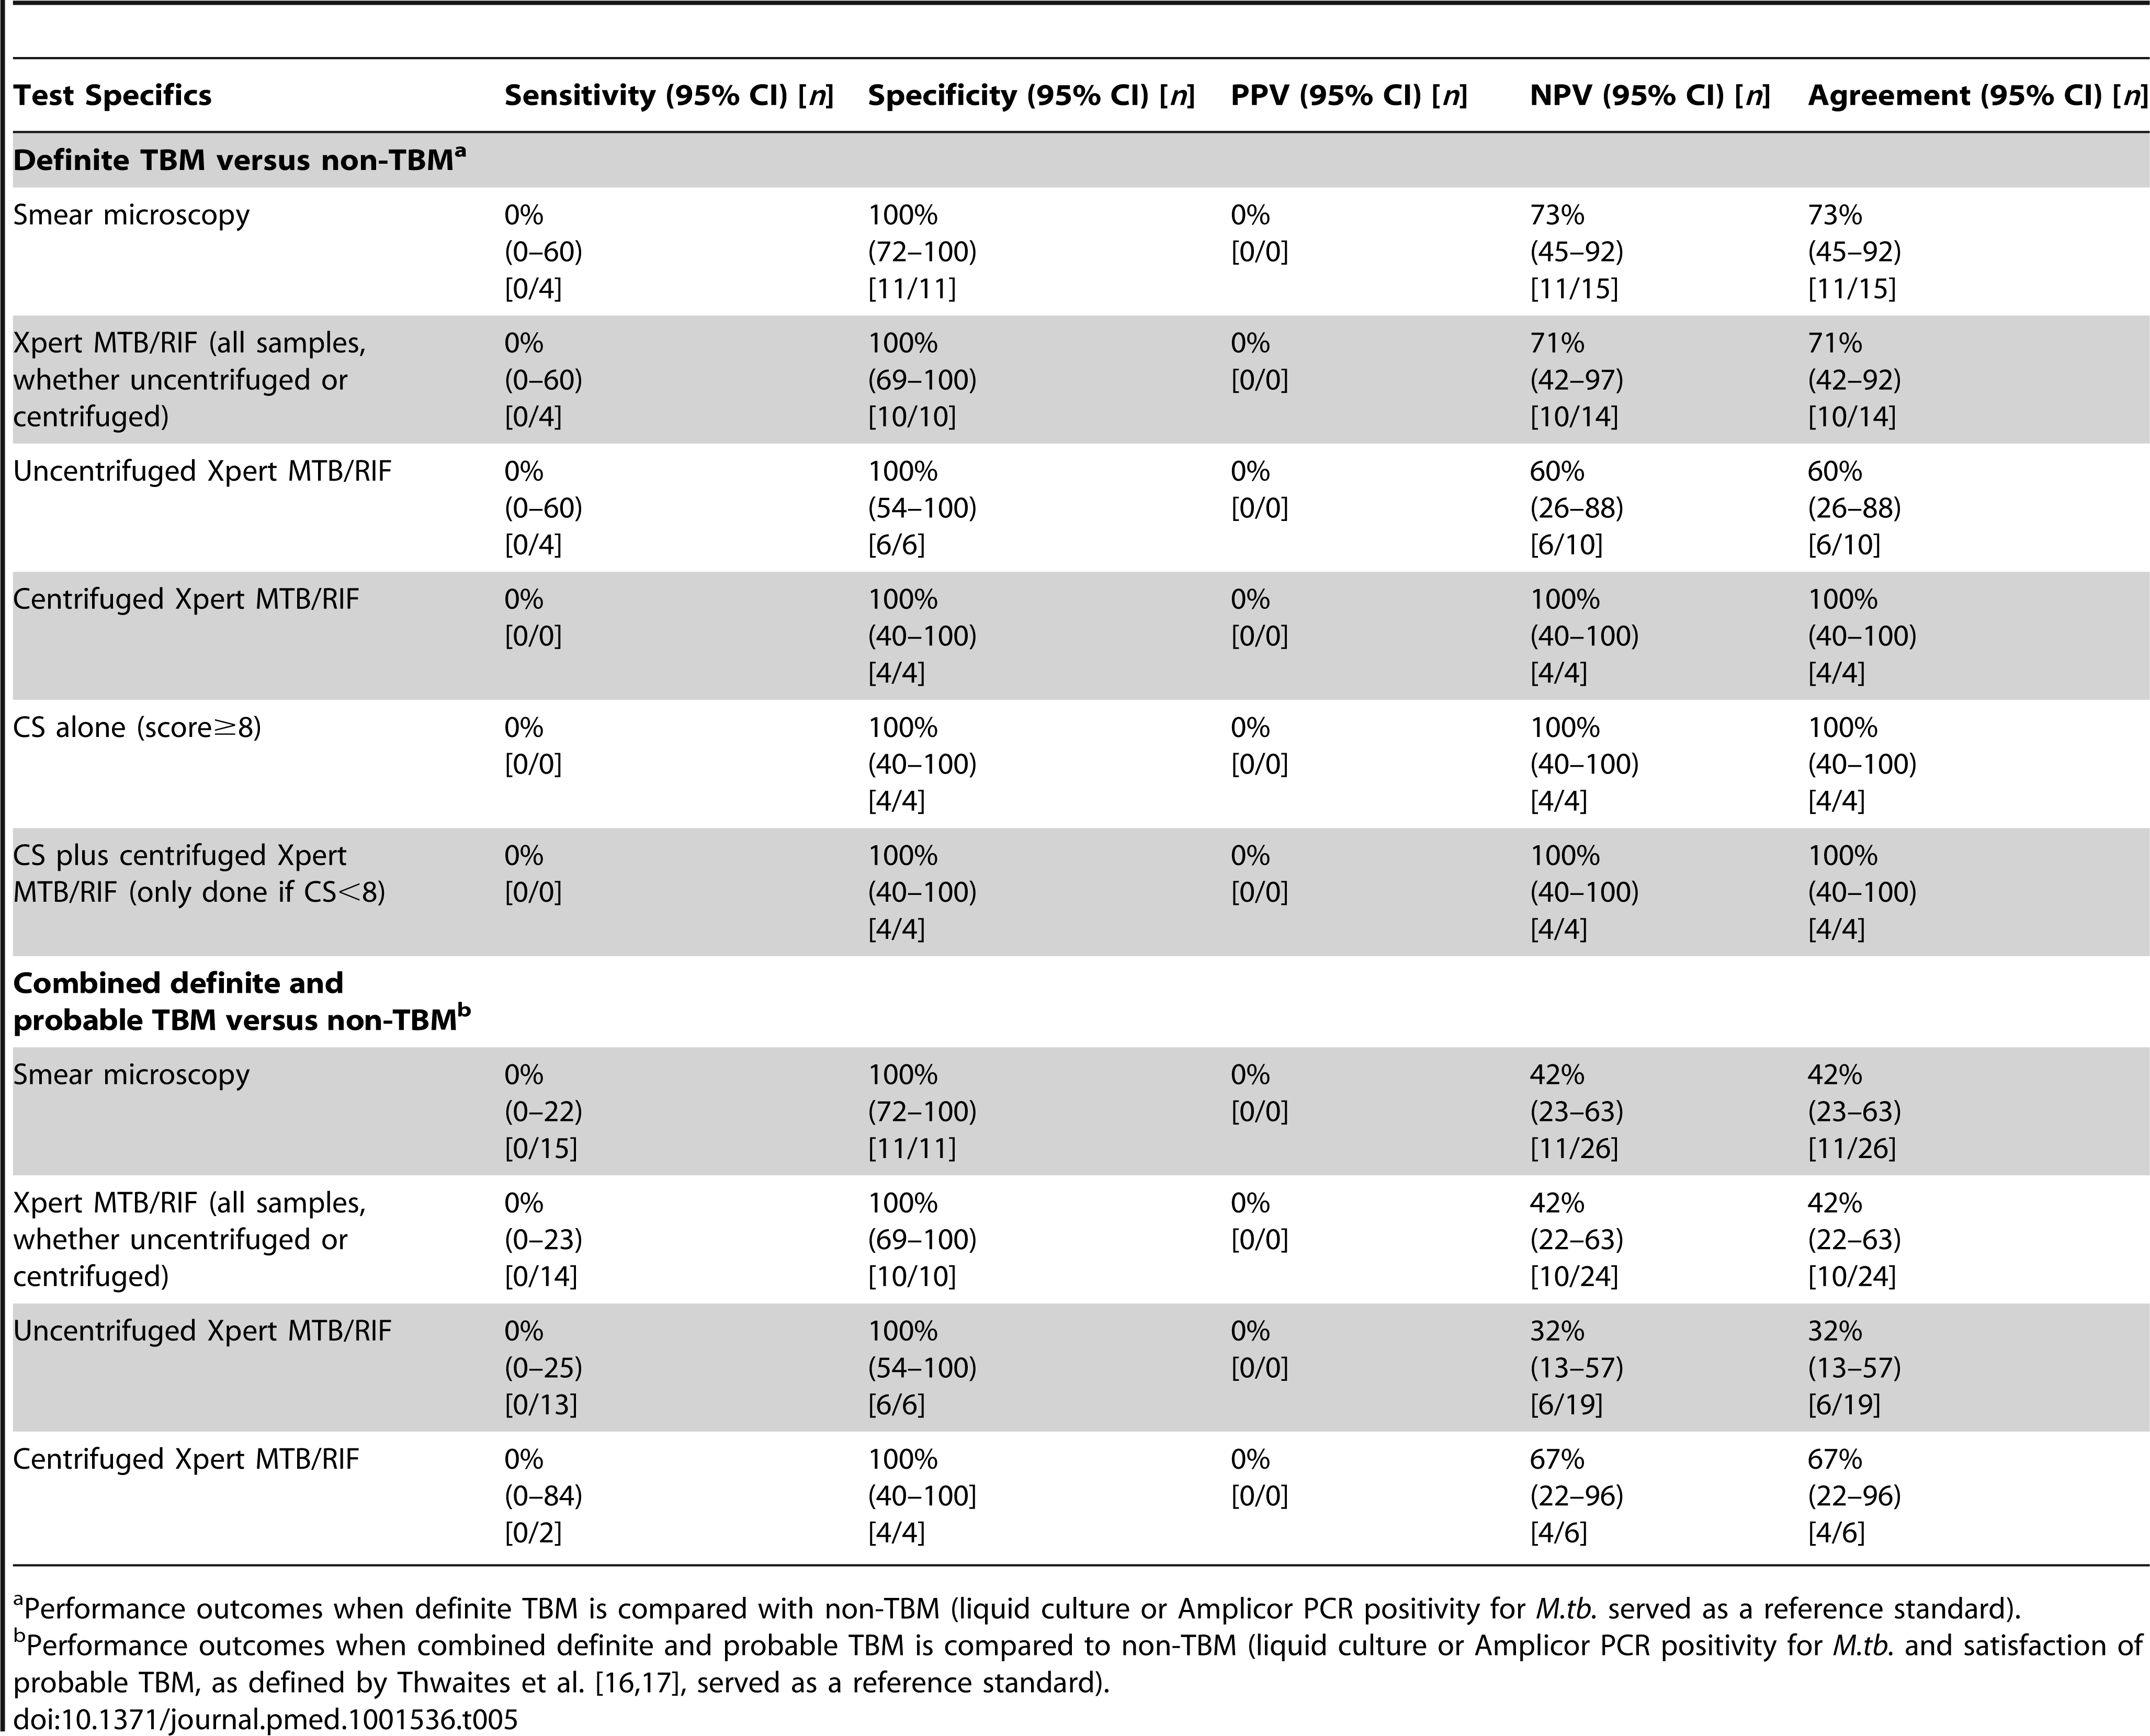 Performance outcomes of Xpert MTB/RIF (overall, uncentrifuged, and centrifuged), smear microscopy, clinical score, and a combination of Xpert MTB/RIF and clinical score.